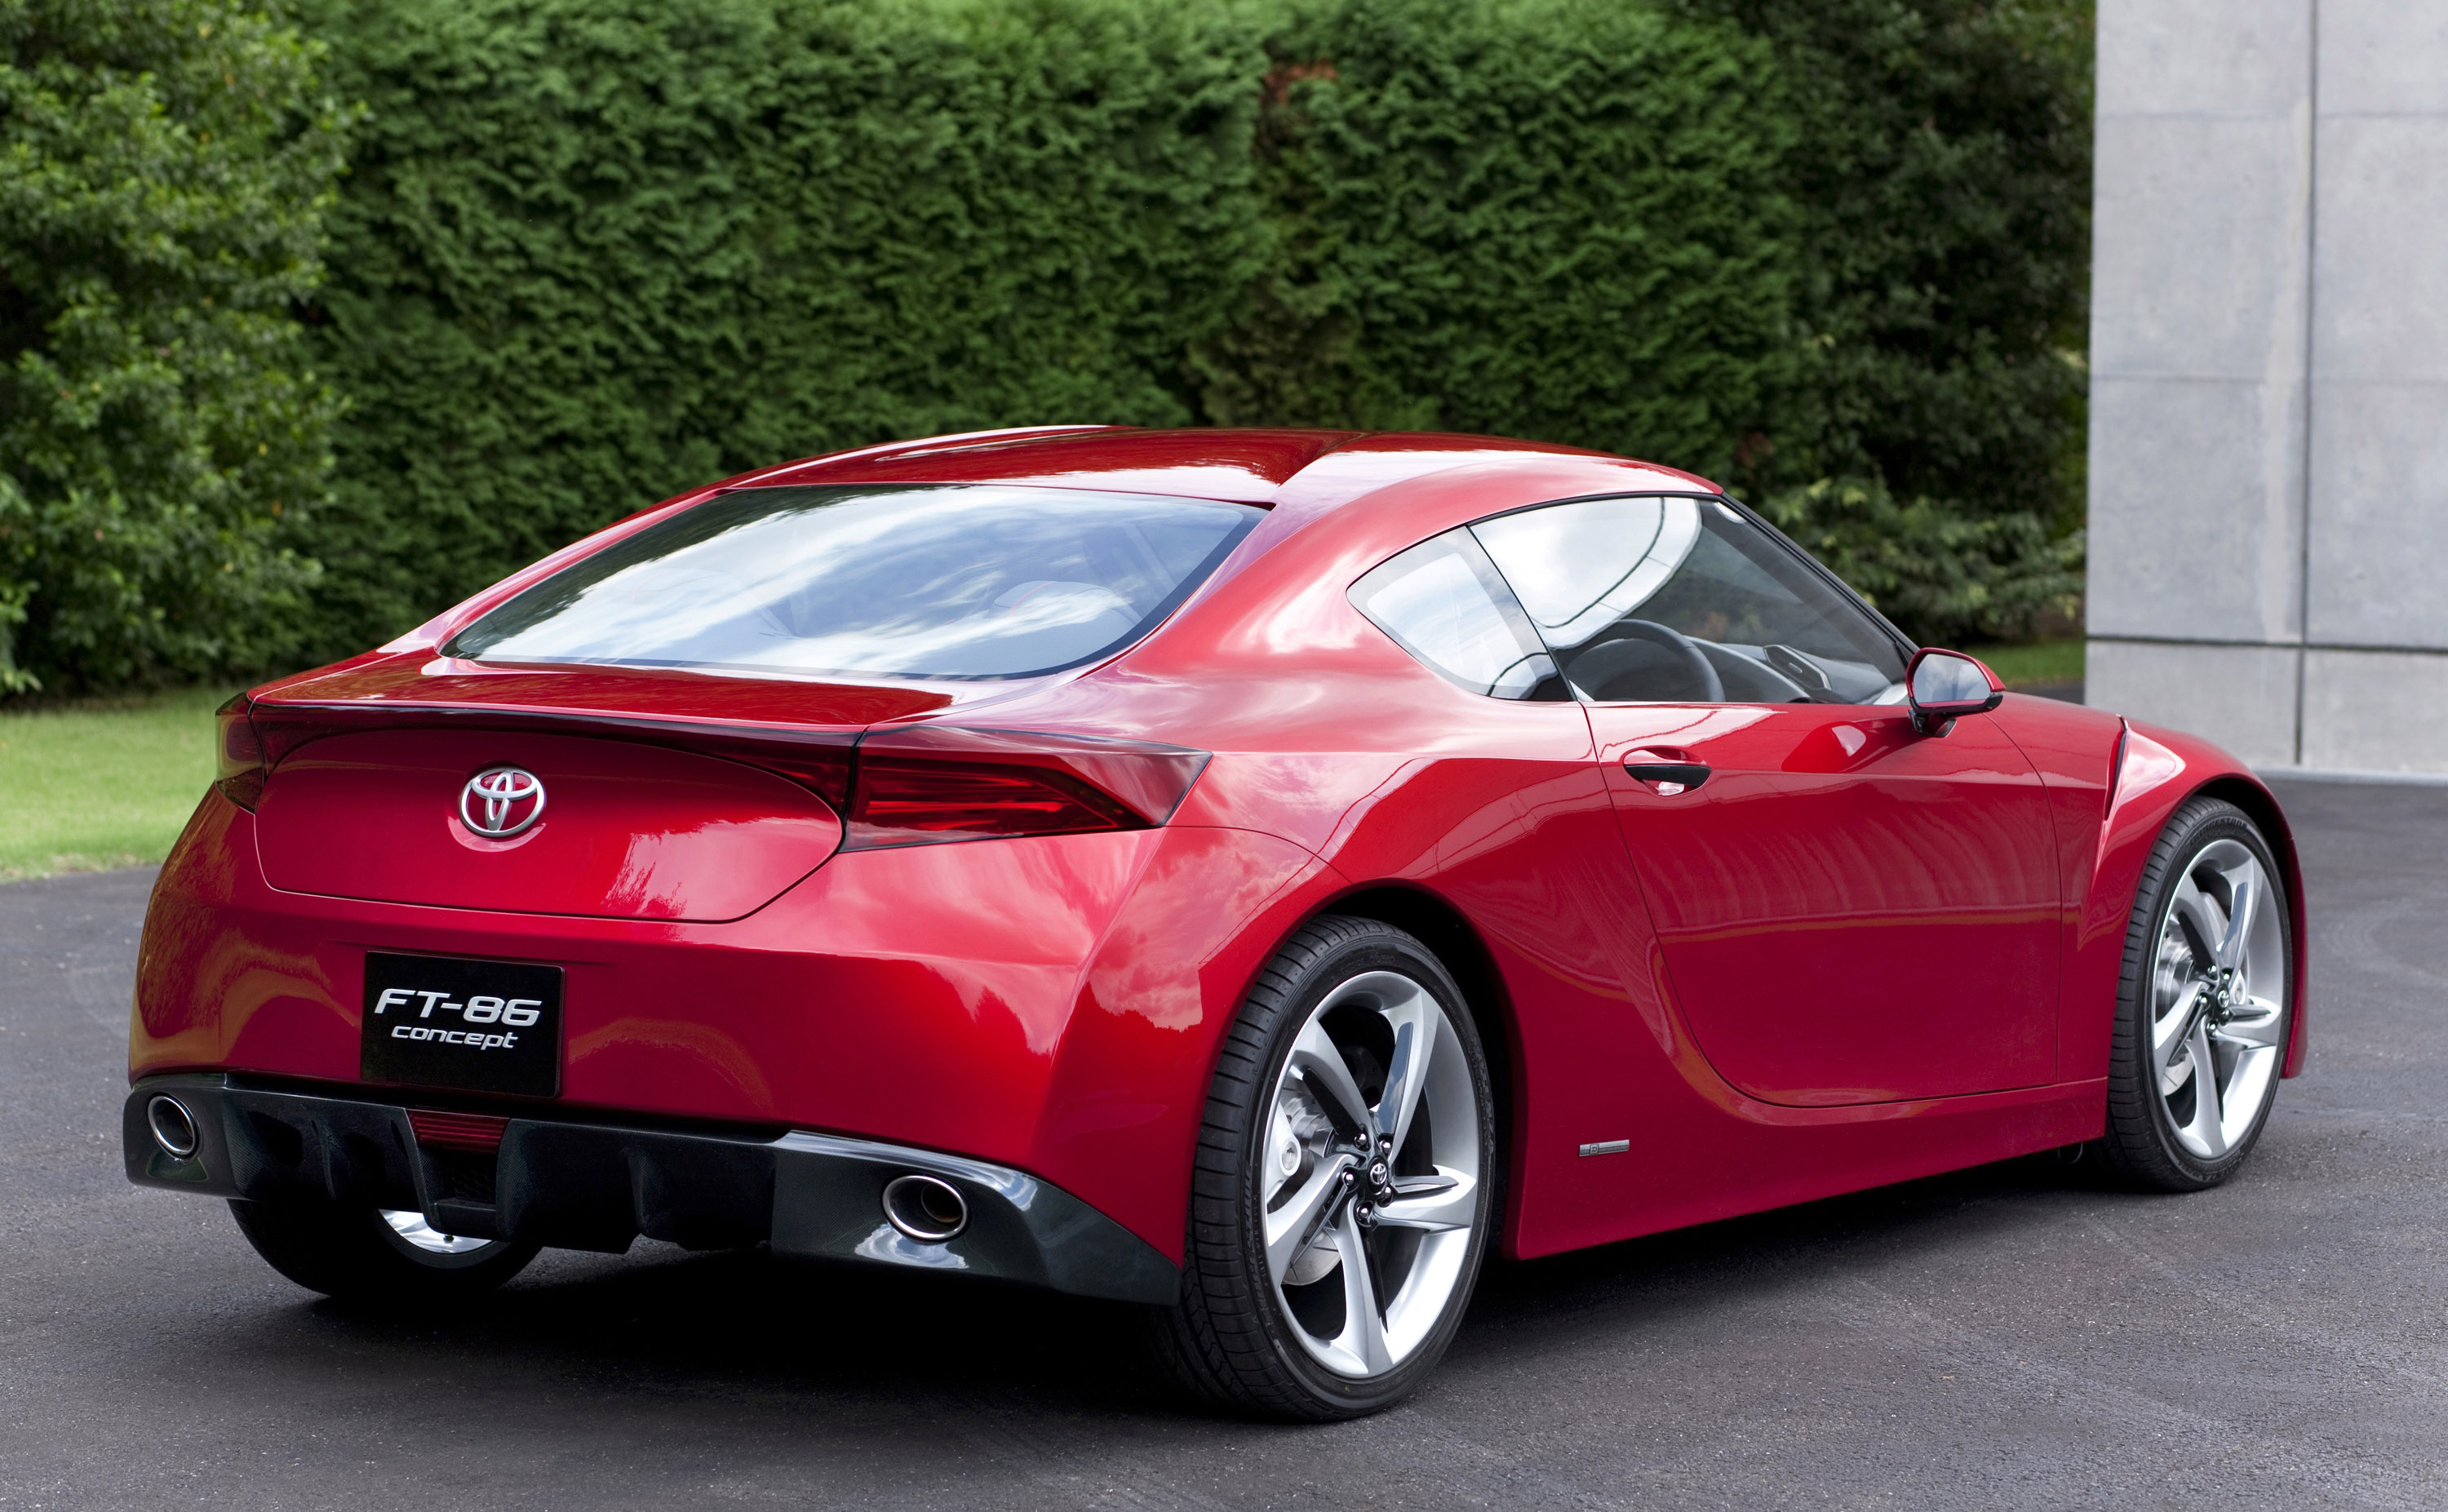 New Toyota Sports Car ft 86 Toyota Ft-86 Concept